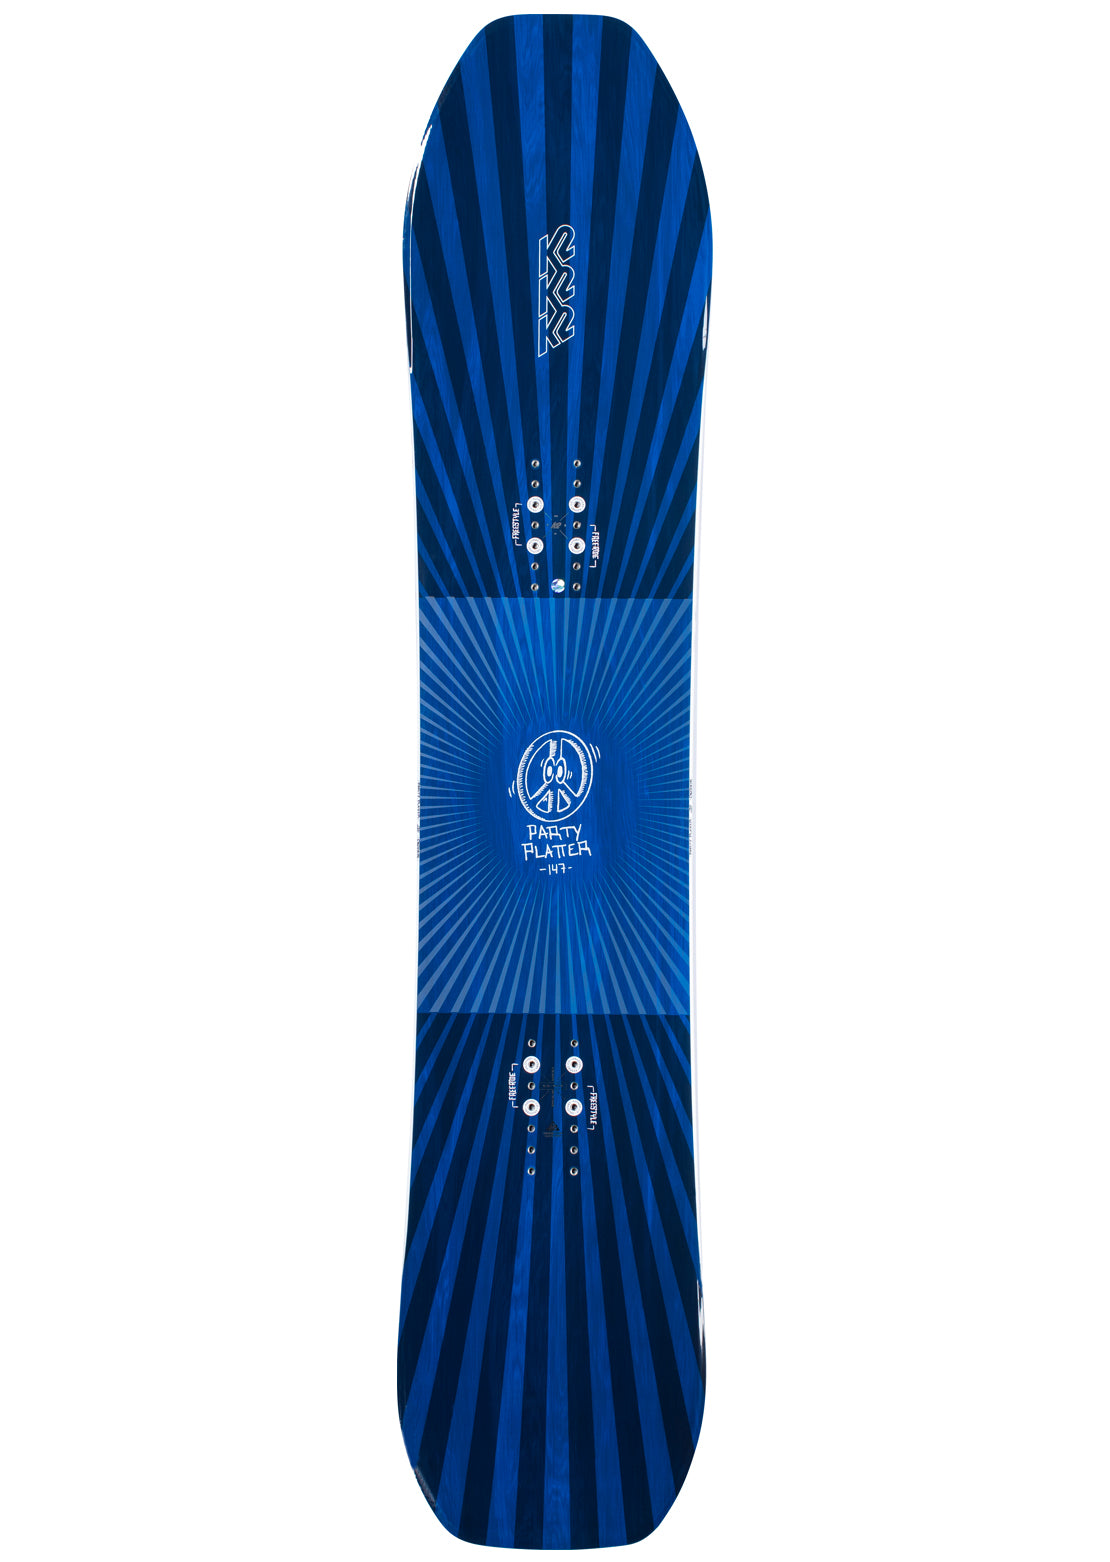 K2 Men's Party Platter Snowboard - 157 cm Multi